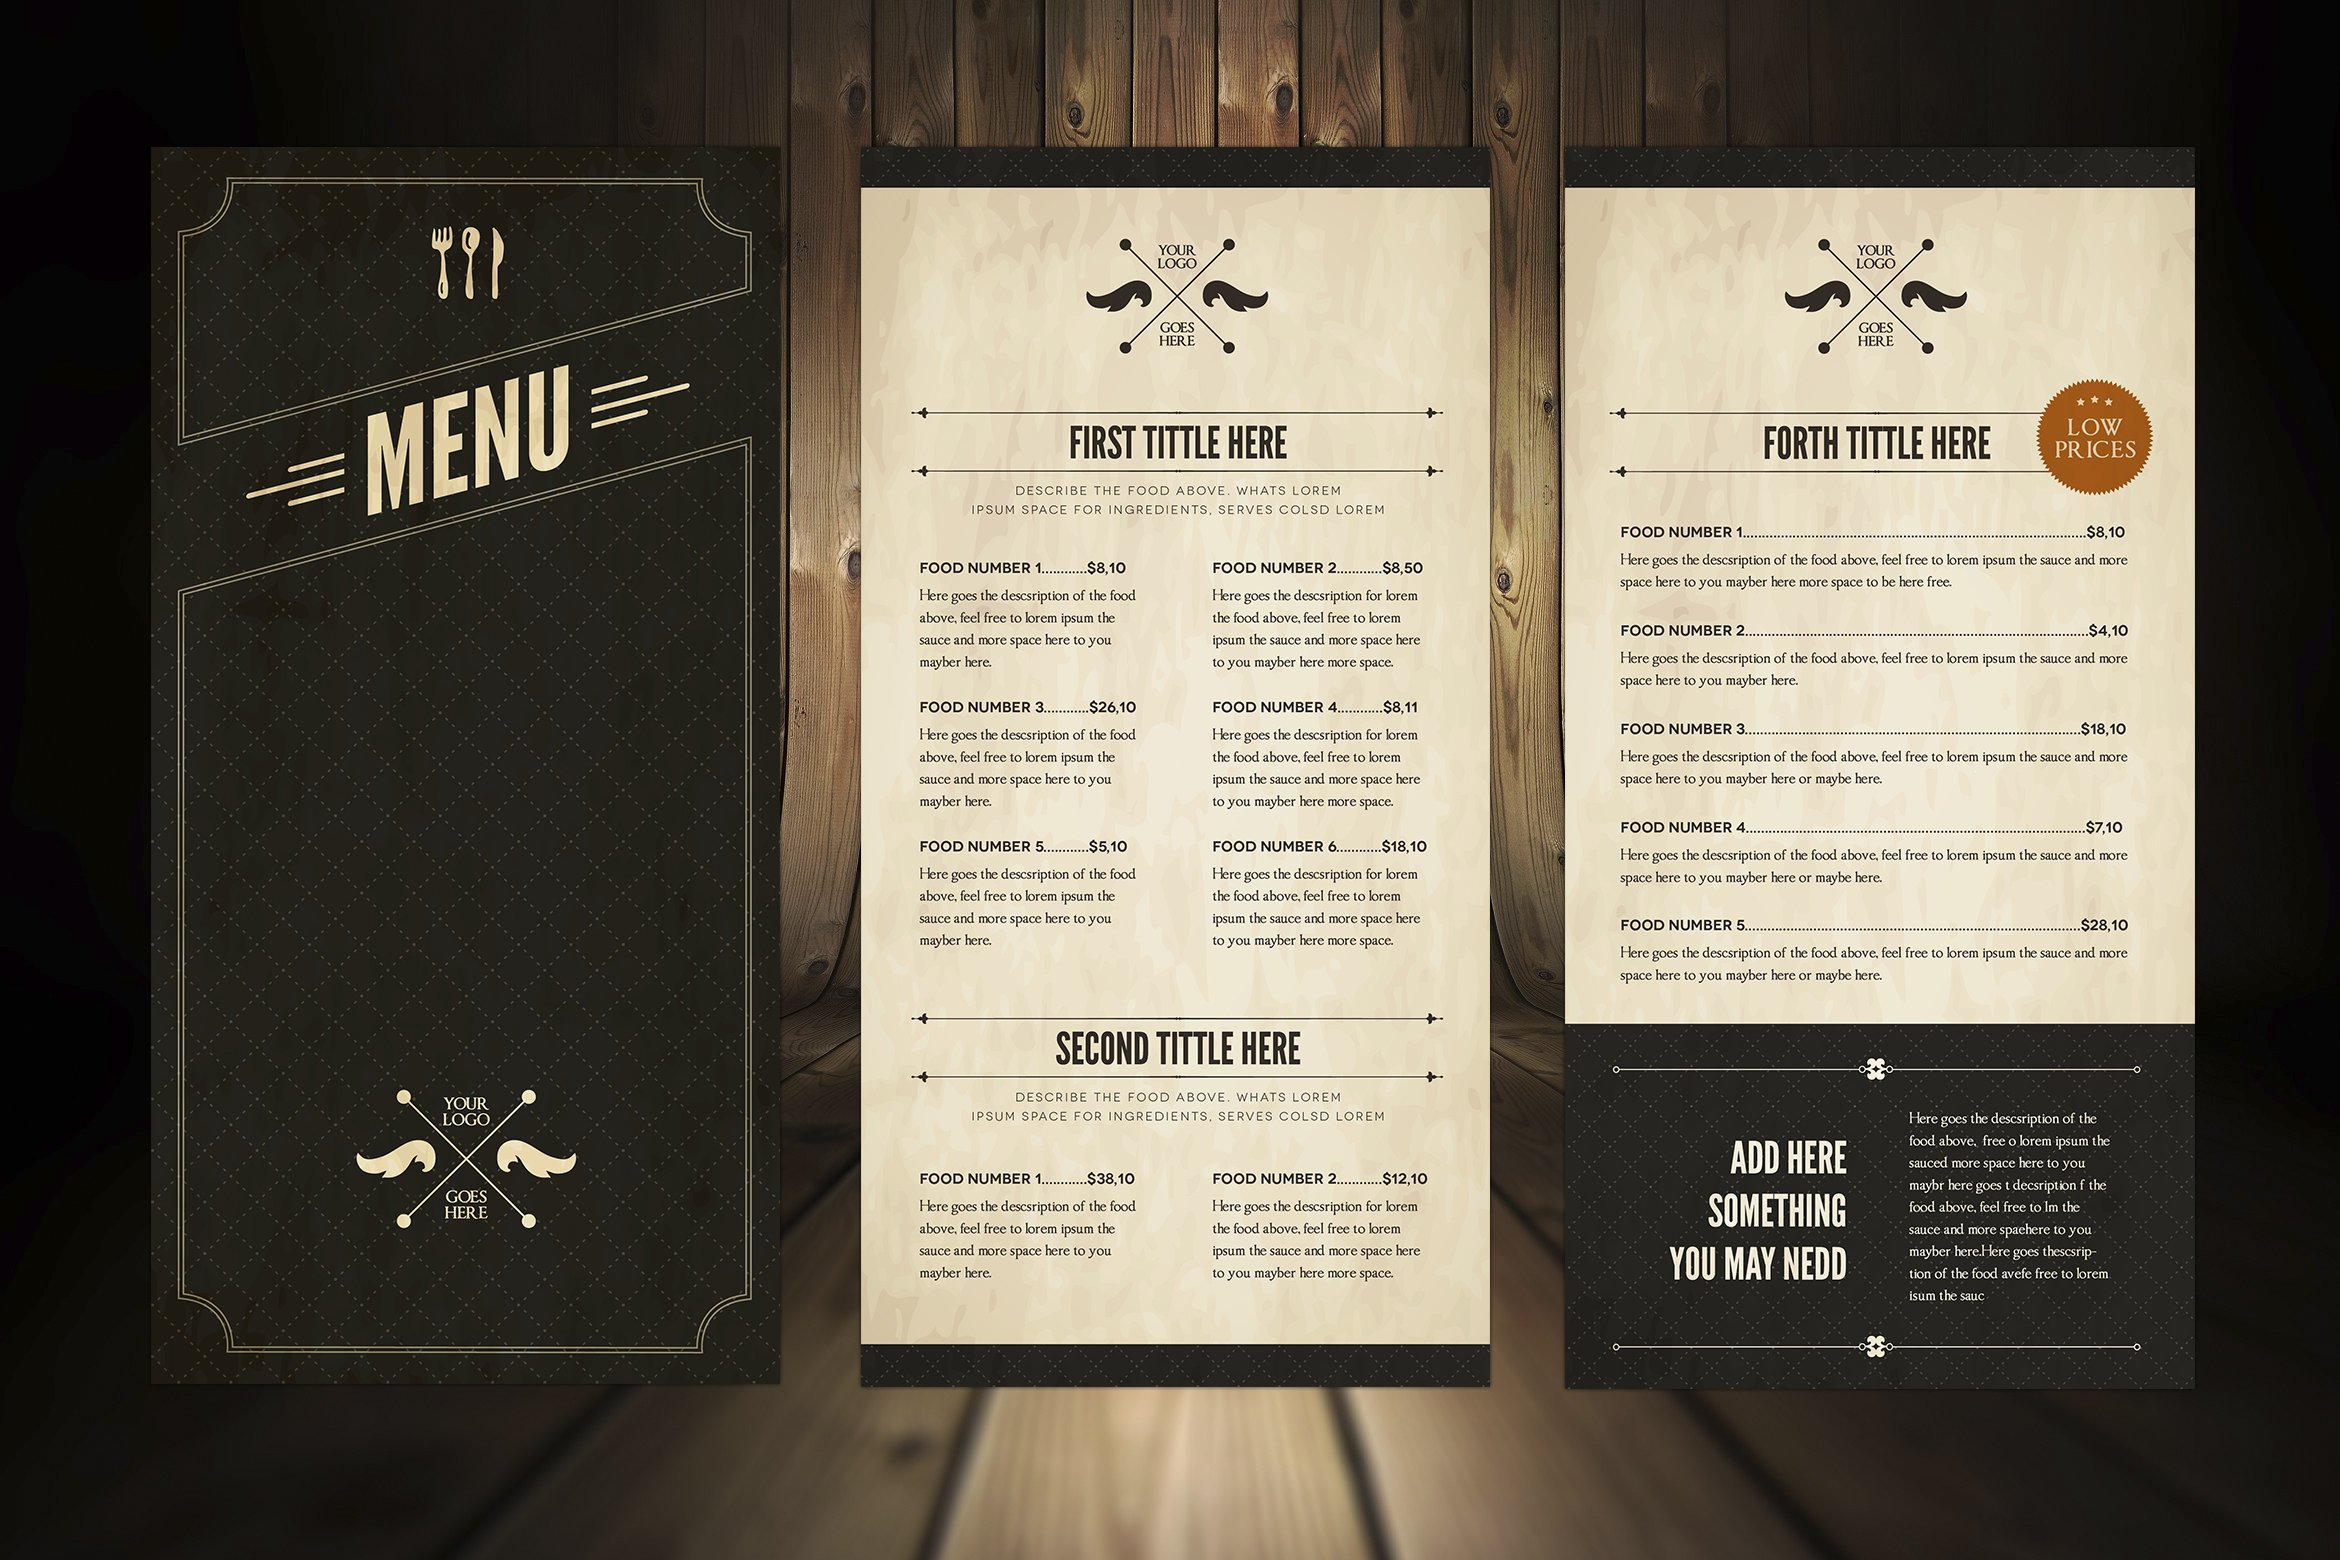 Creative Menu Design Ideas